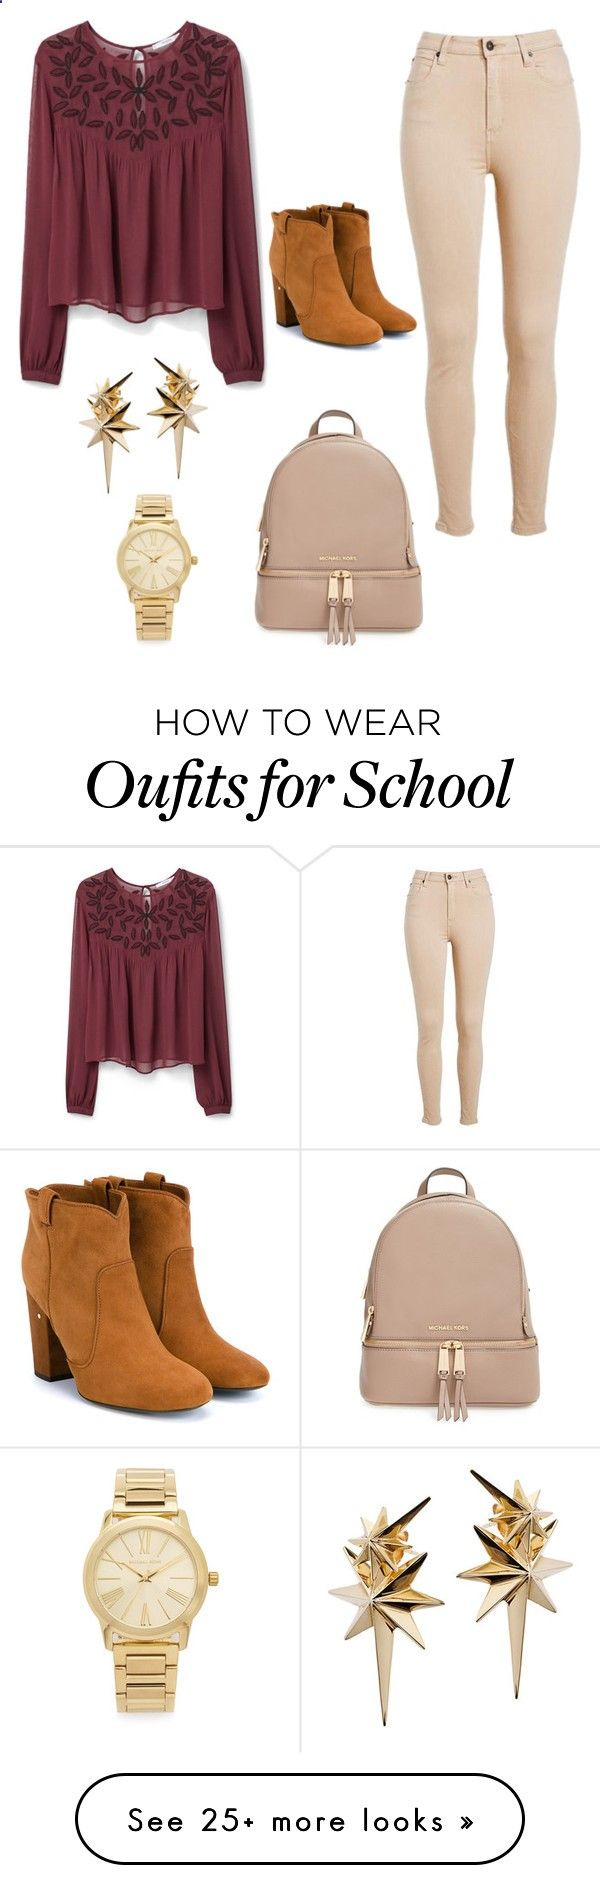 Casual School Outfit by maytte-carrera on Polyvore featuring MANGO, MICHAEL Michael Kors, Laurence Dacade, Ludevine, Michael Kors, womens clothing, women, female, woman and misses